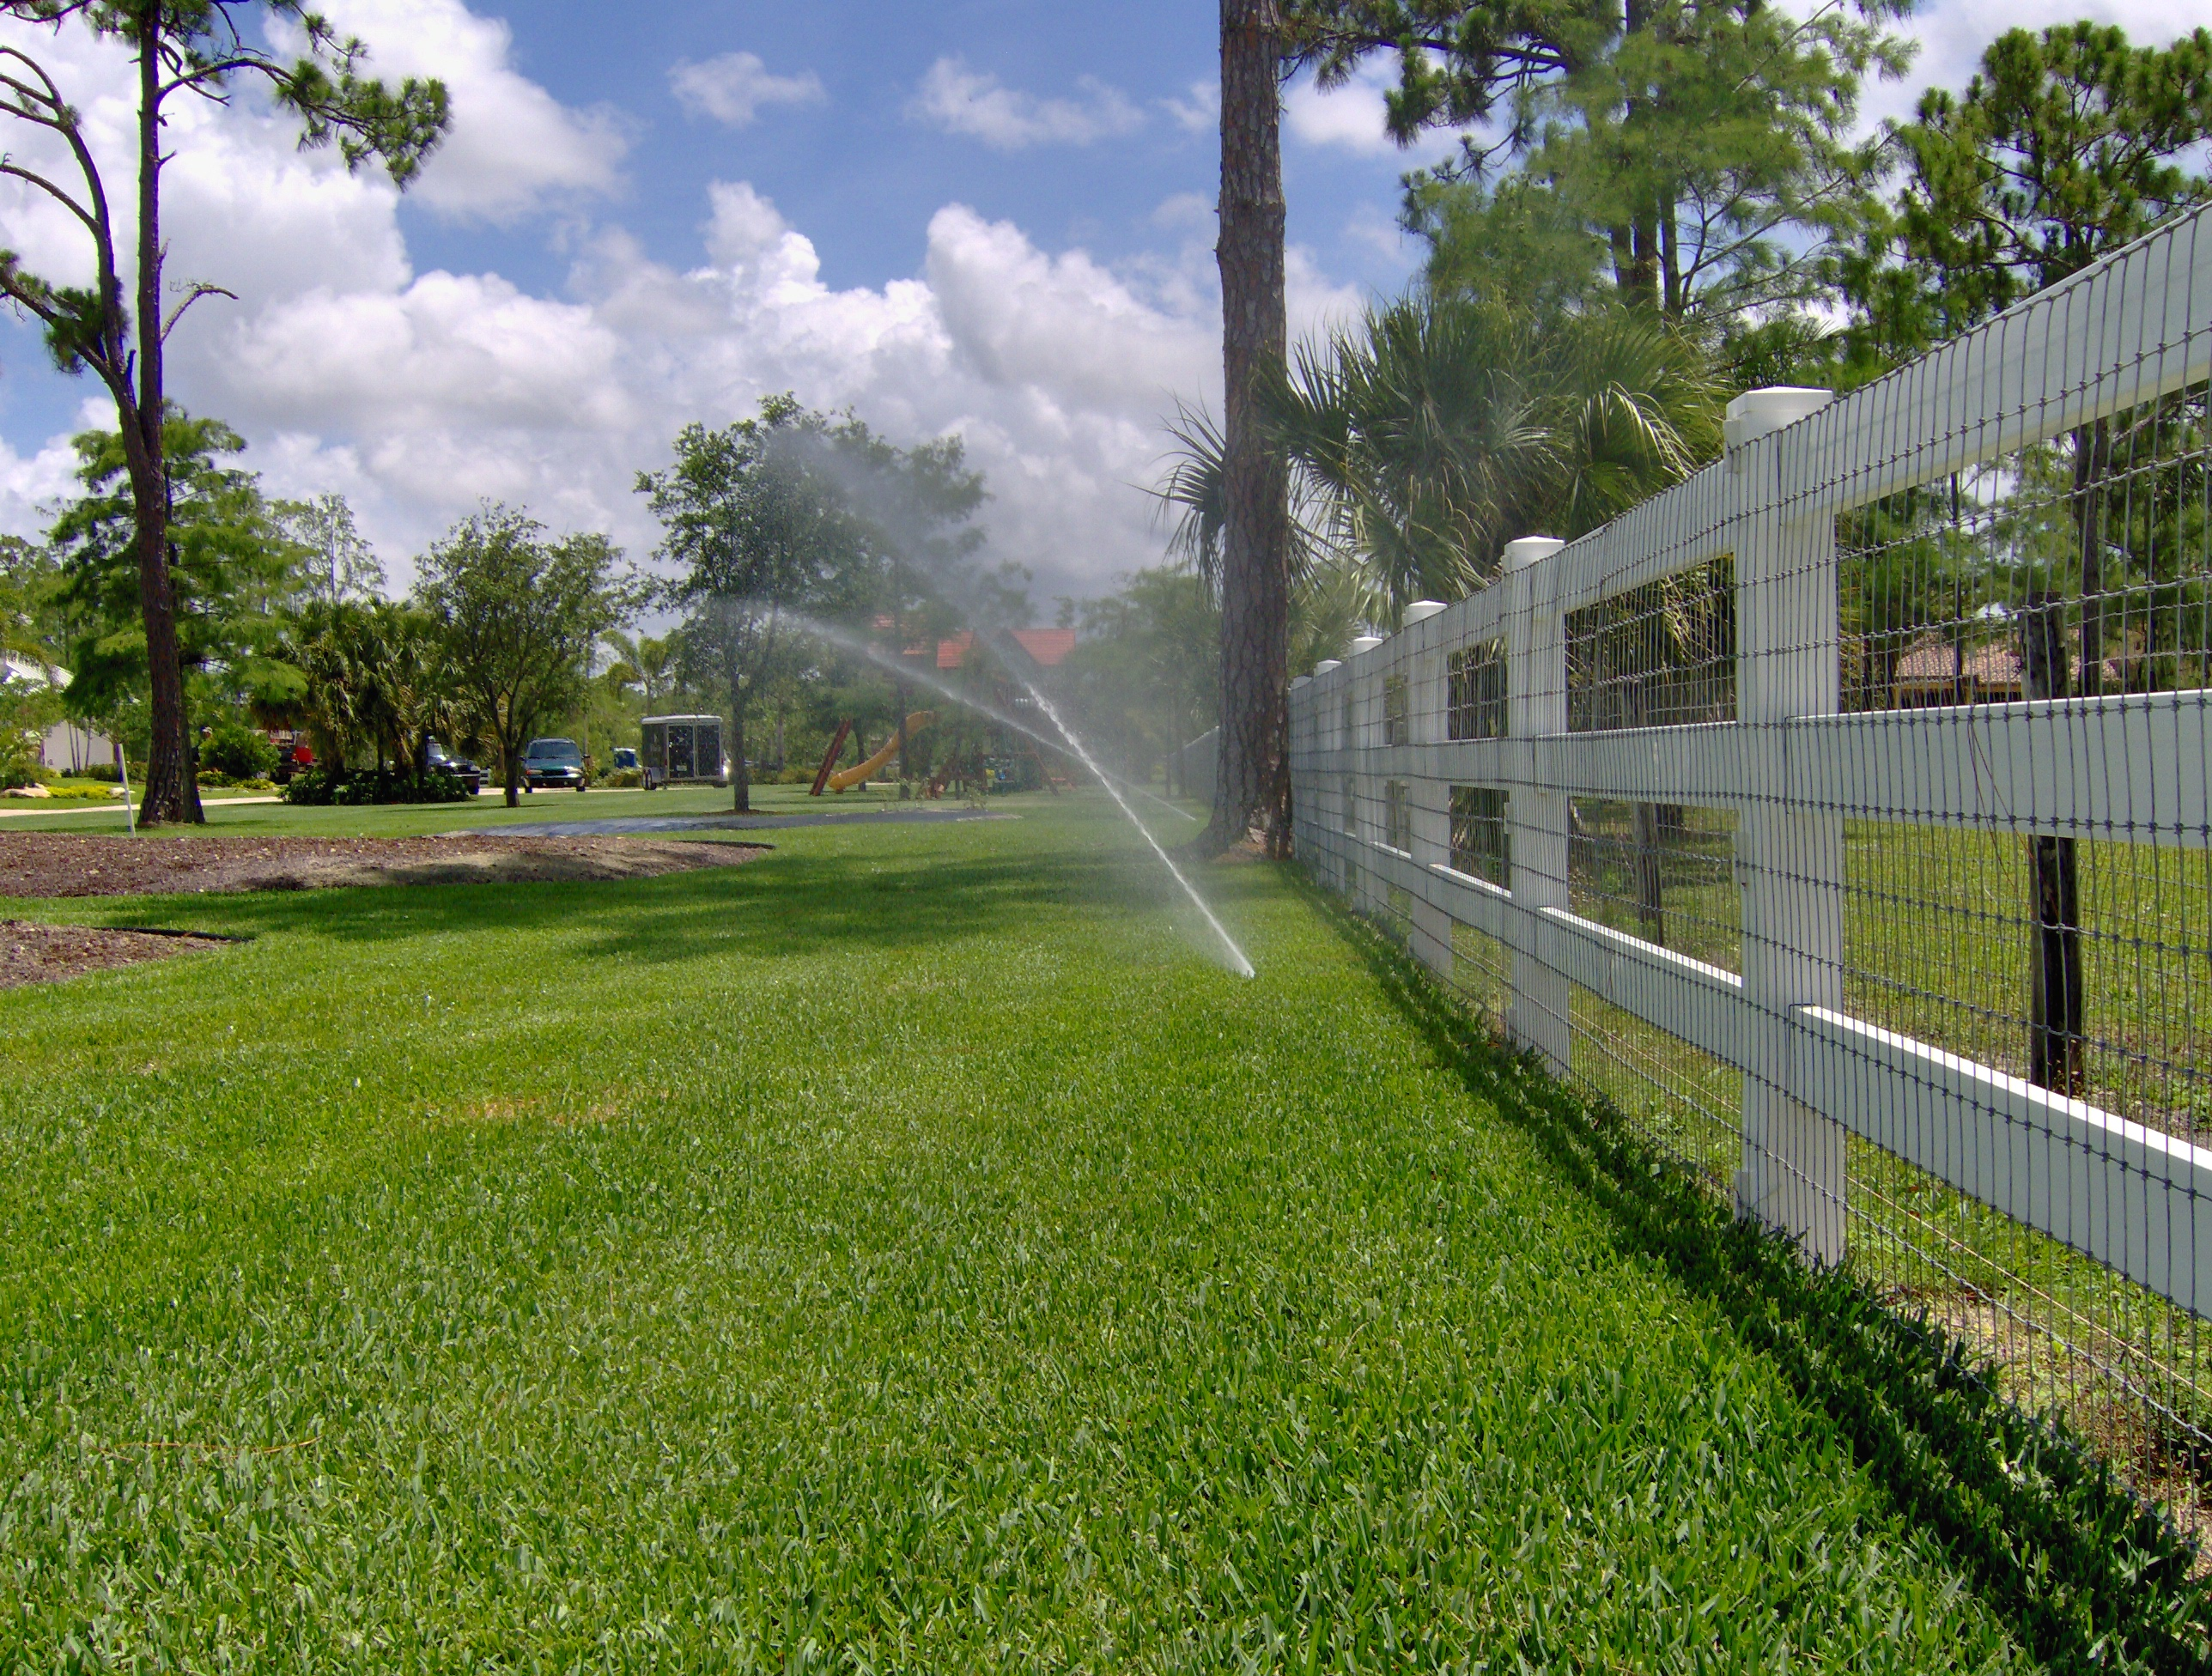 Homeland sprinklers